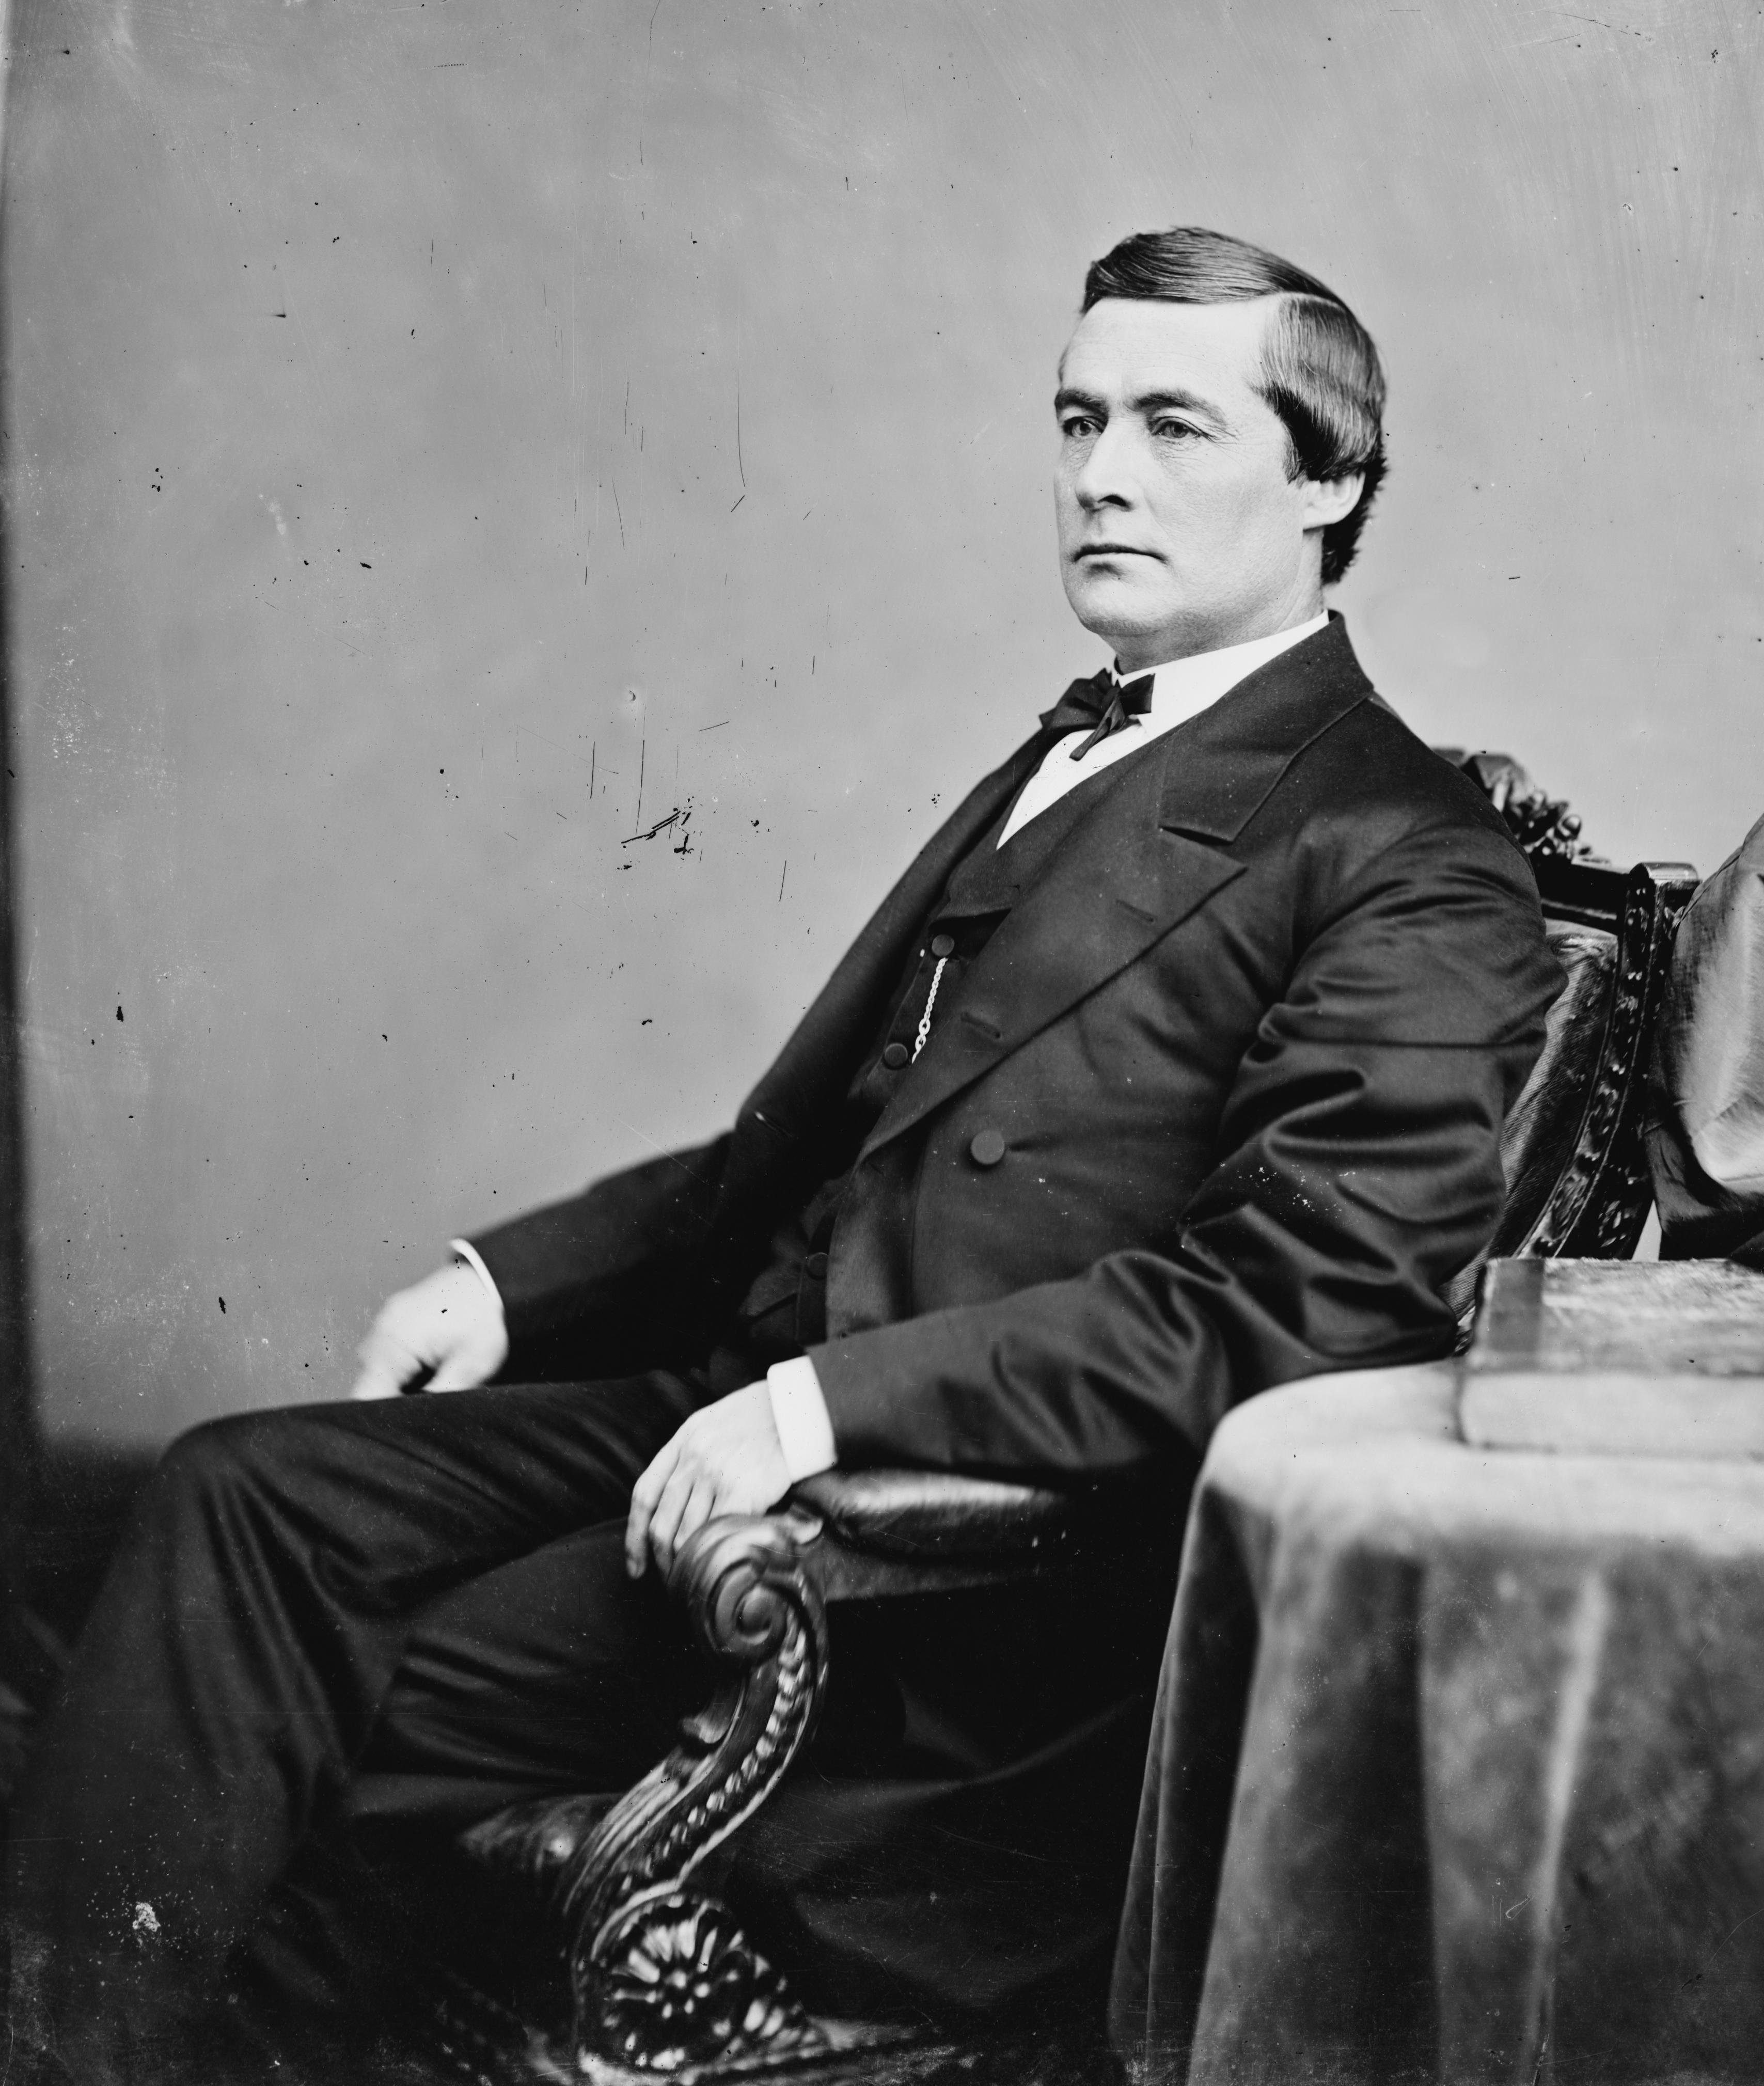 Union Colonel Edmund G. Ross, later a Kansas Senator. When two horses were shot from beneath him, Ross calmly saddled a third in the open between the clashing armies to inspire his men. Photograph by the famed Matthew Brady.